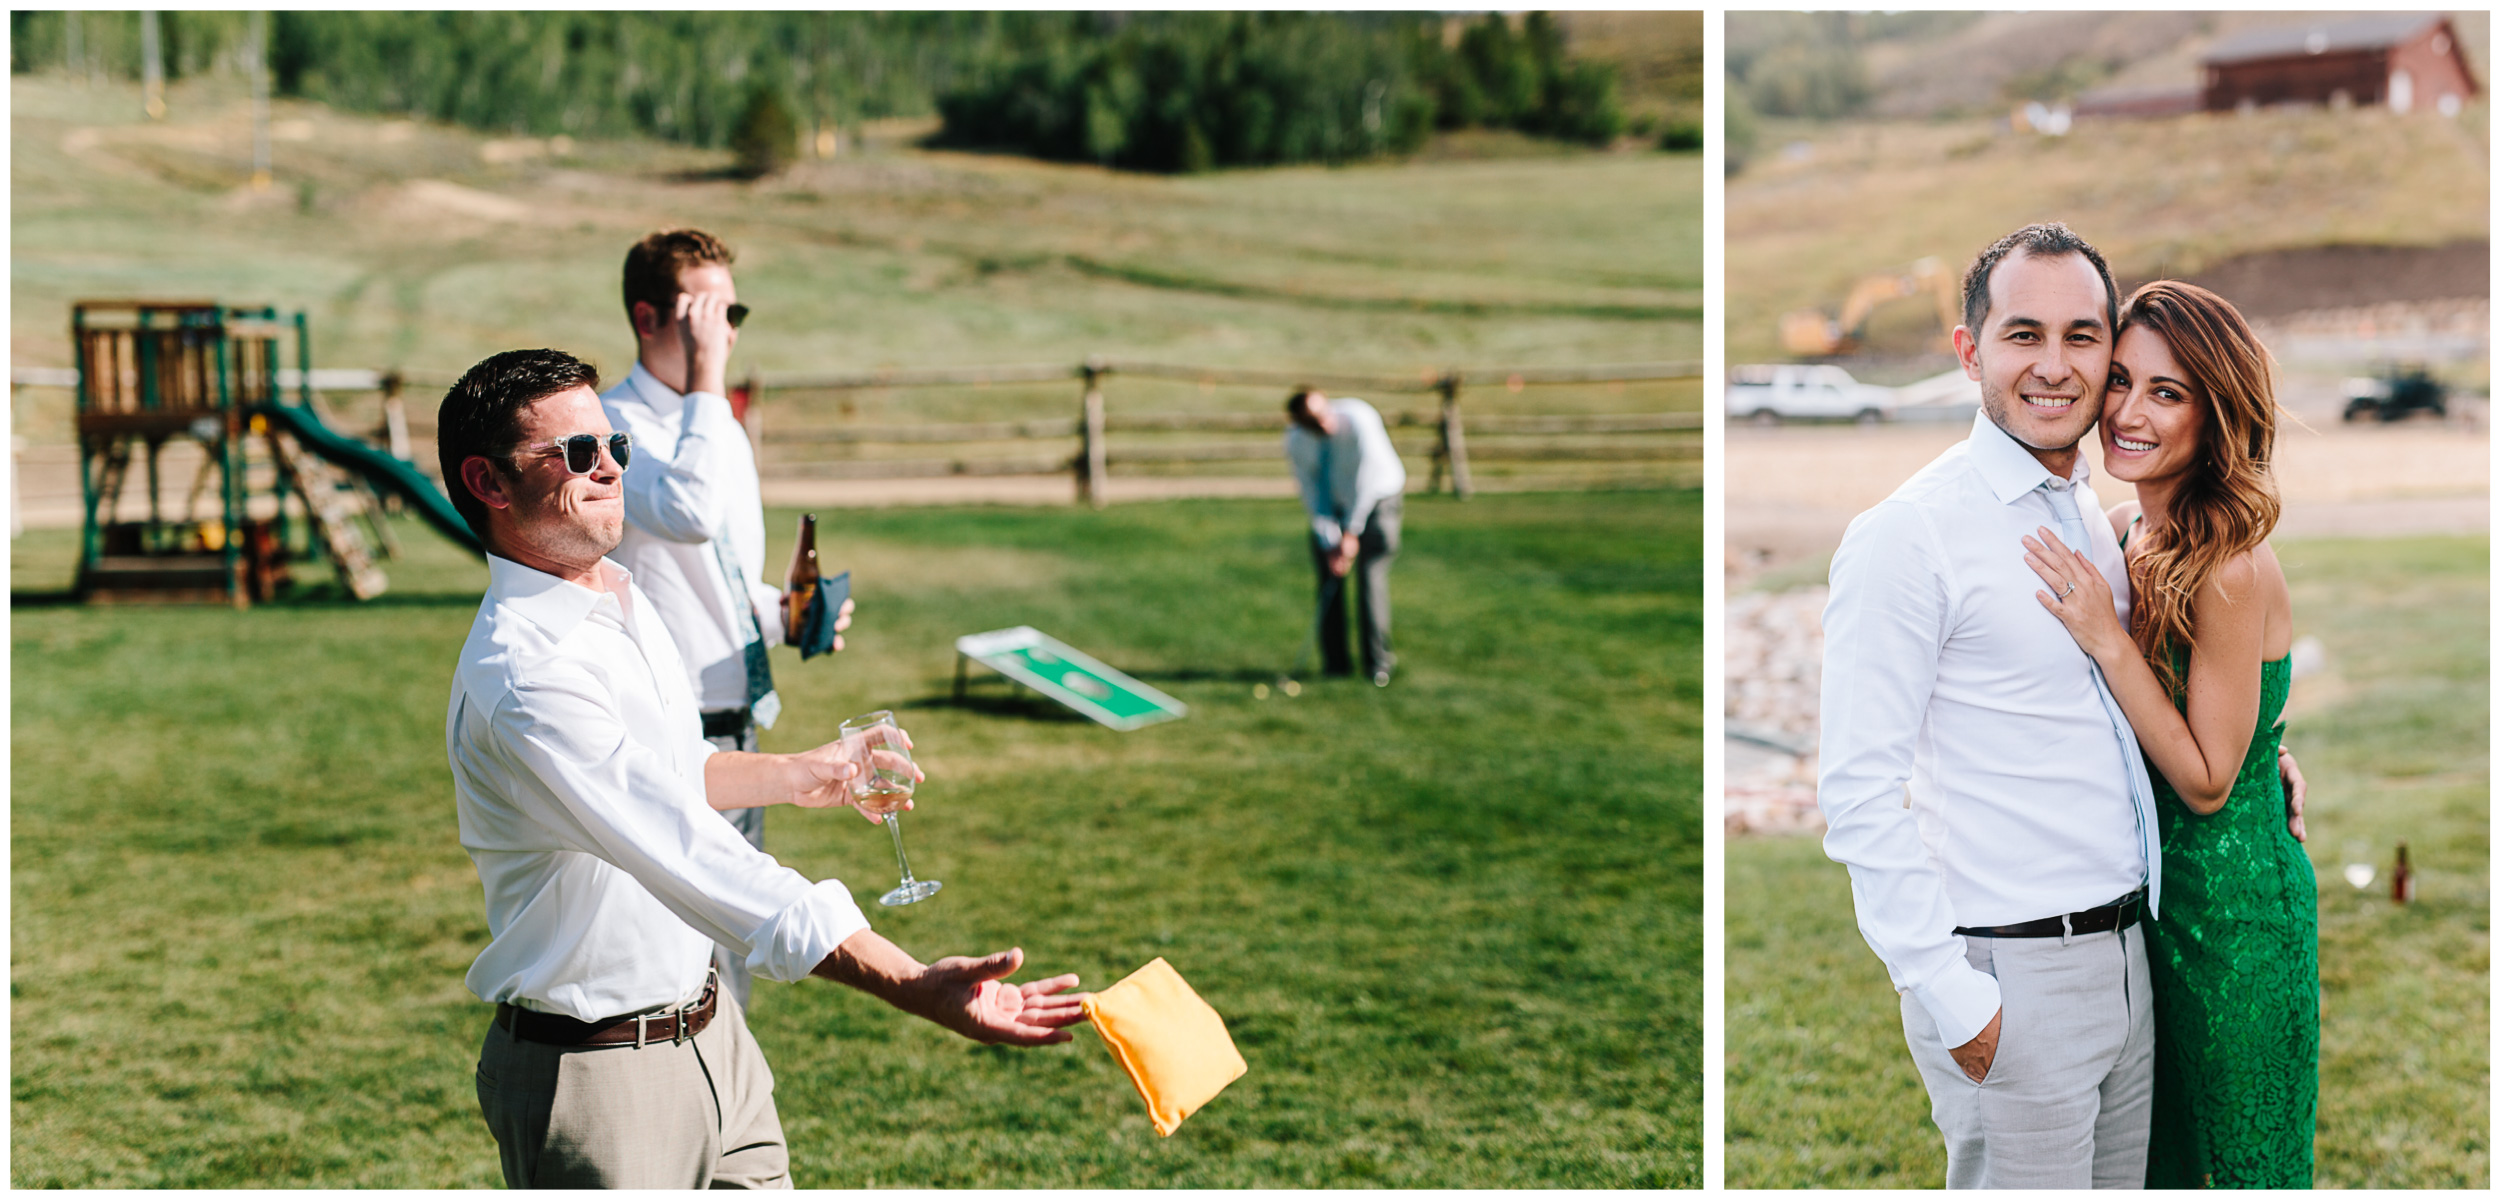 granby_colorado_wedding_70.jpg